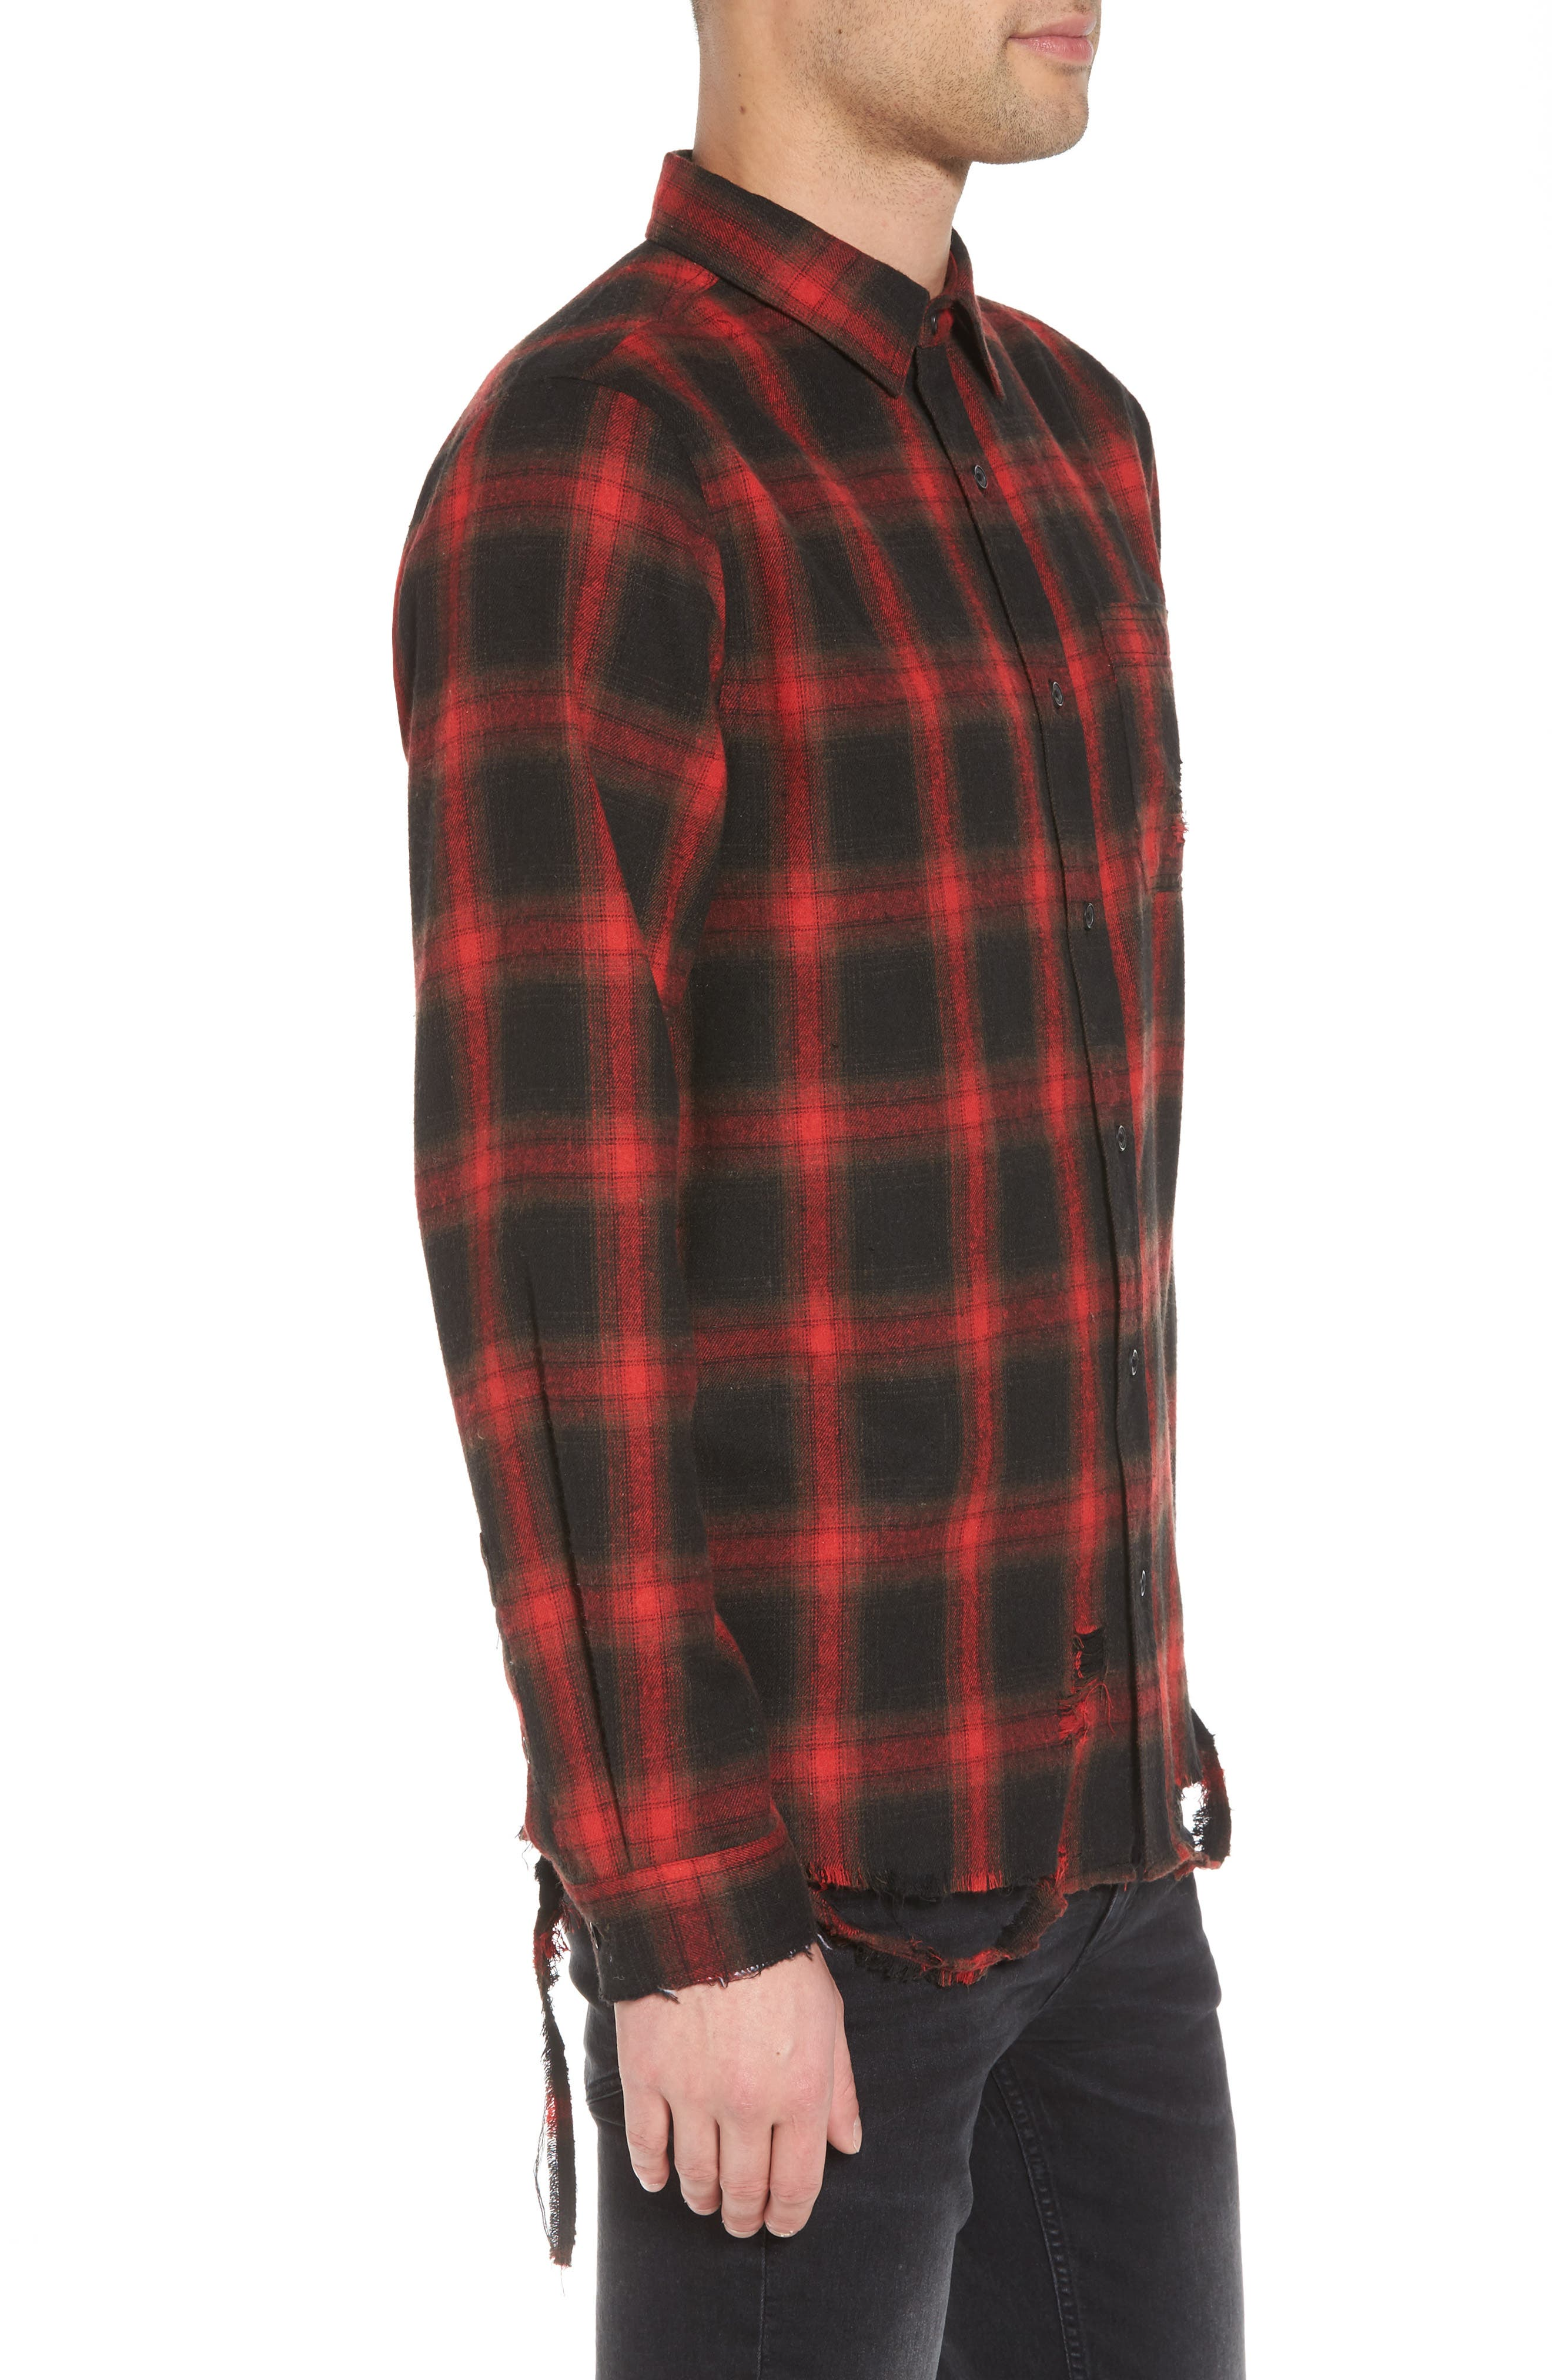 Shredded Plaid Flannel Shirt,                             Alternate thumbnail 3, color,                             Black Rock Red Ombre Check